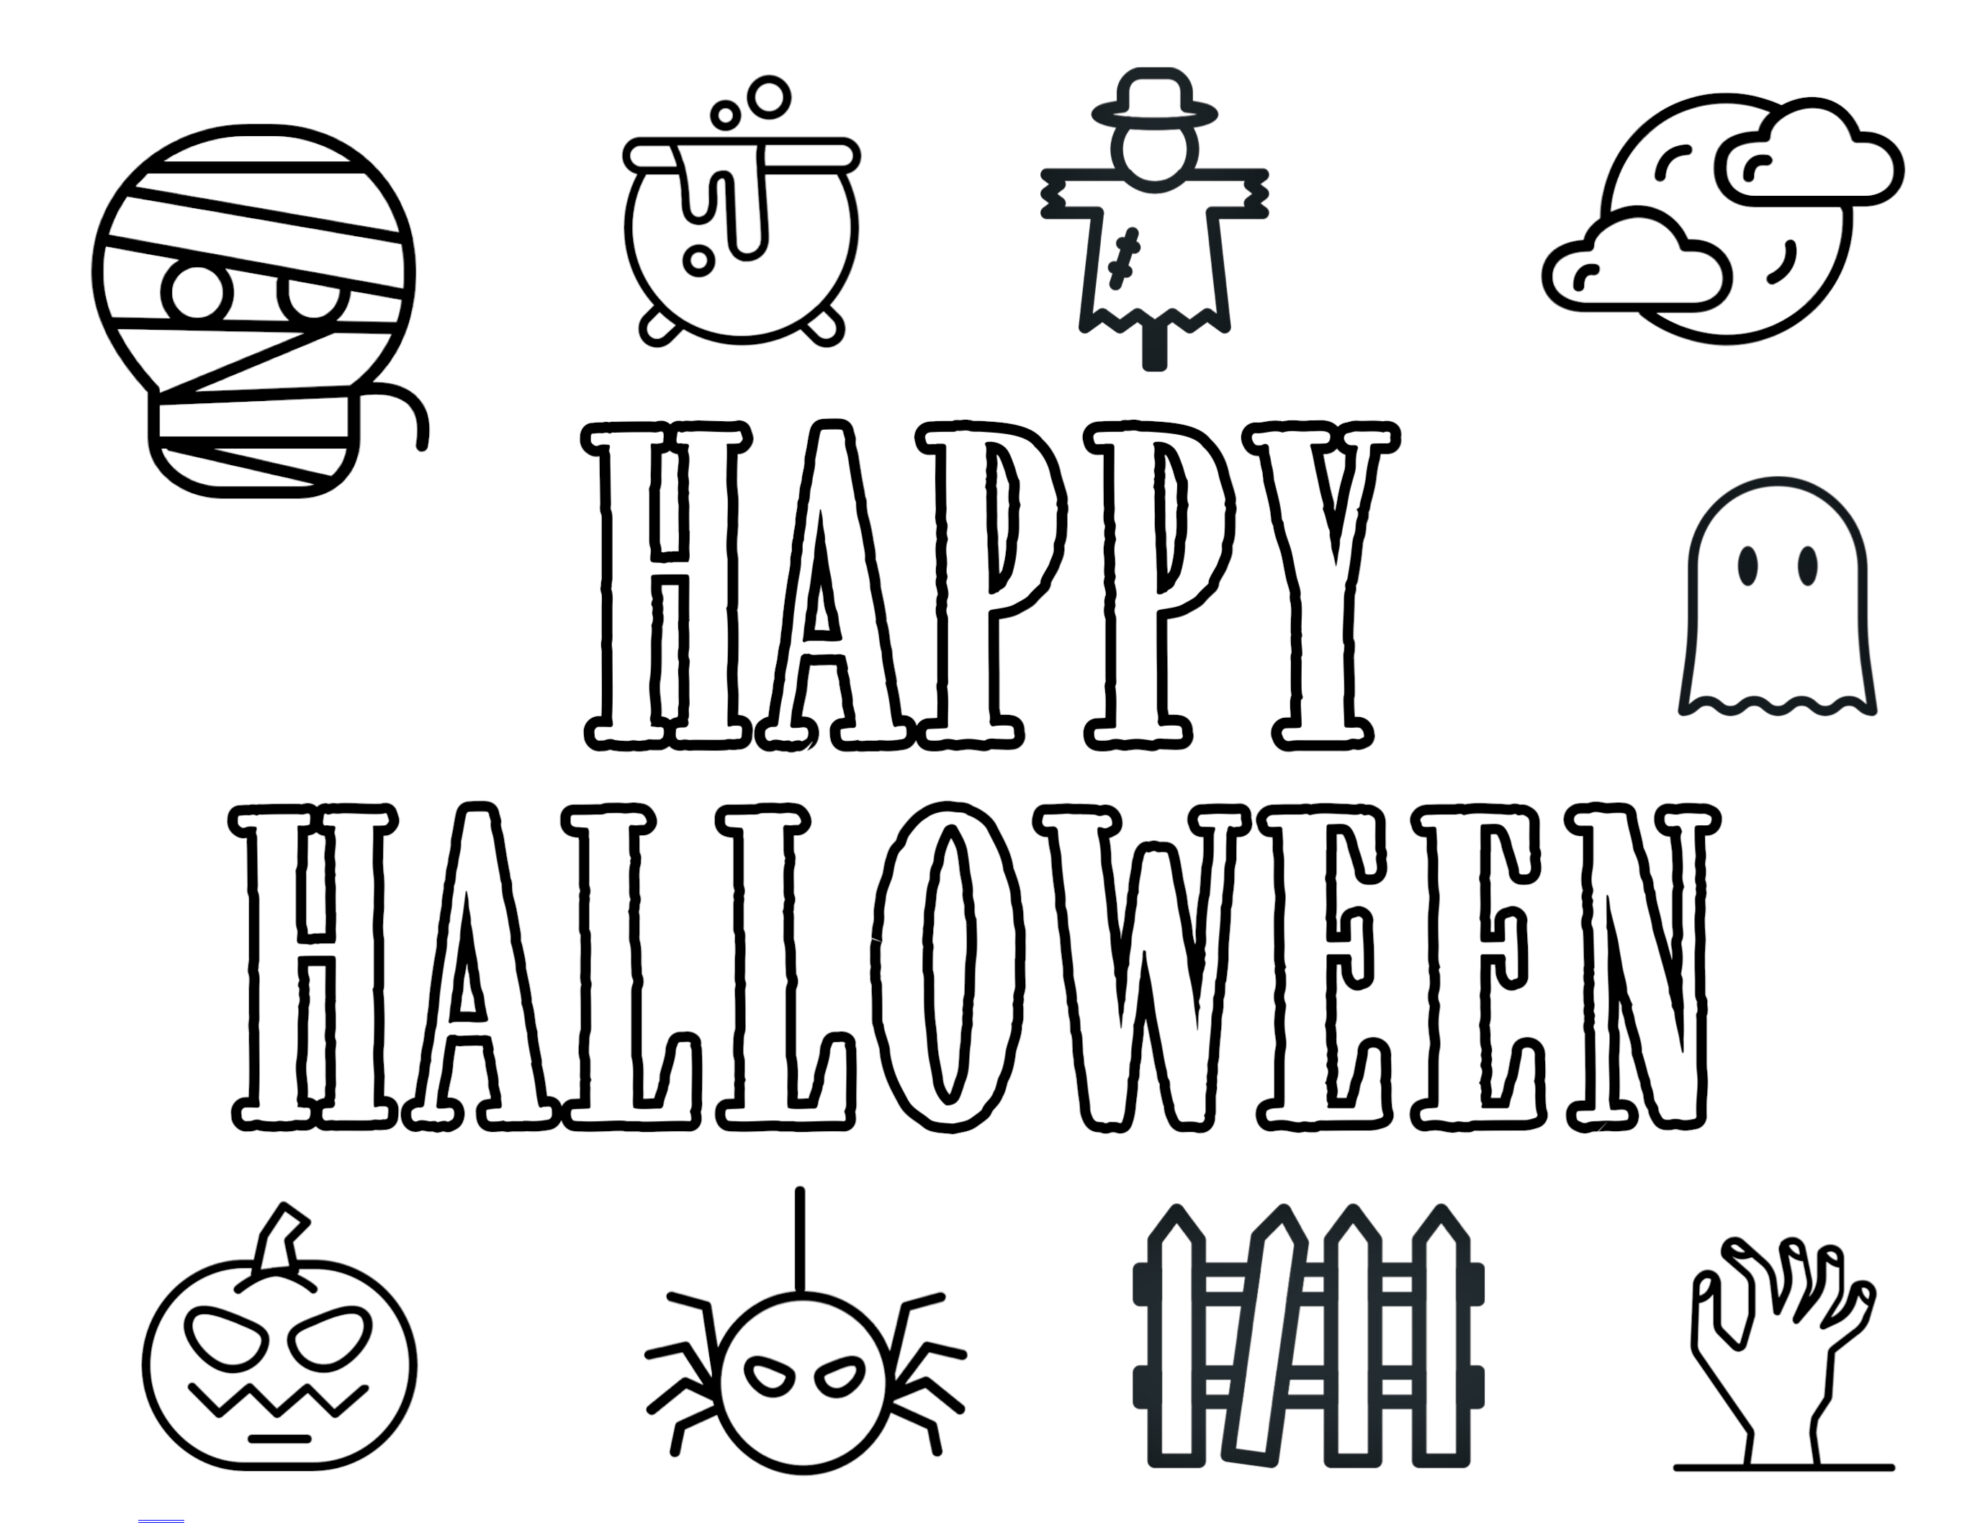 image relating to Printable Holloween Pictures titled No cost Printable Halloween Coloring Webpages - Paper Path Style and design